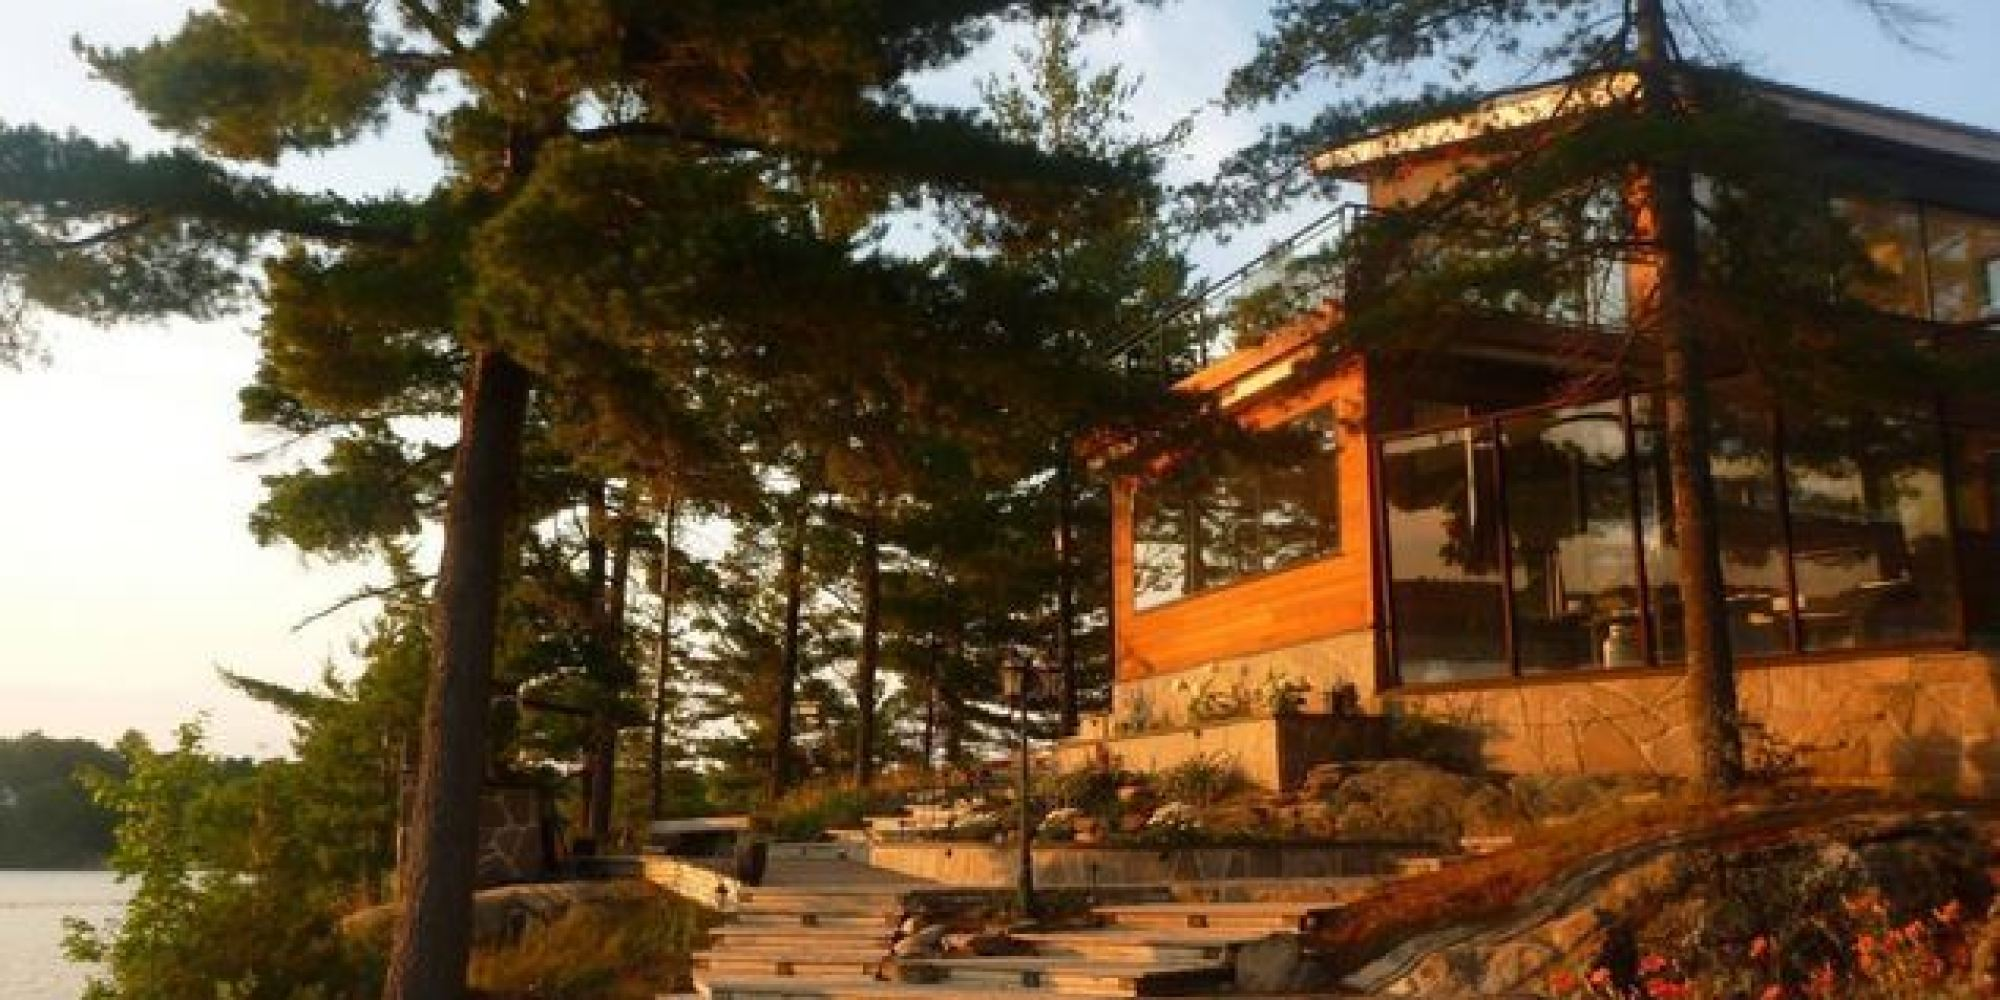 The Most Beautiful Cottages For Rent In Ontario (PHOTOS)